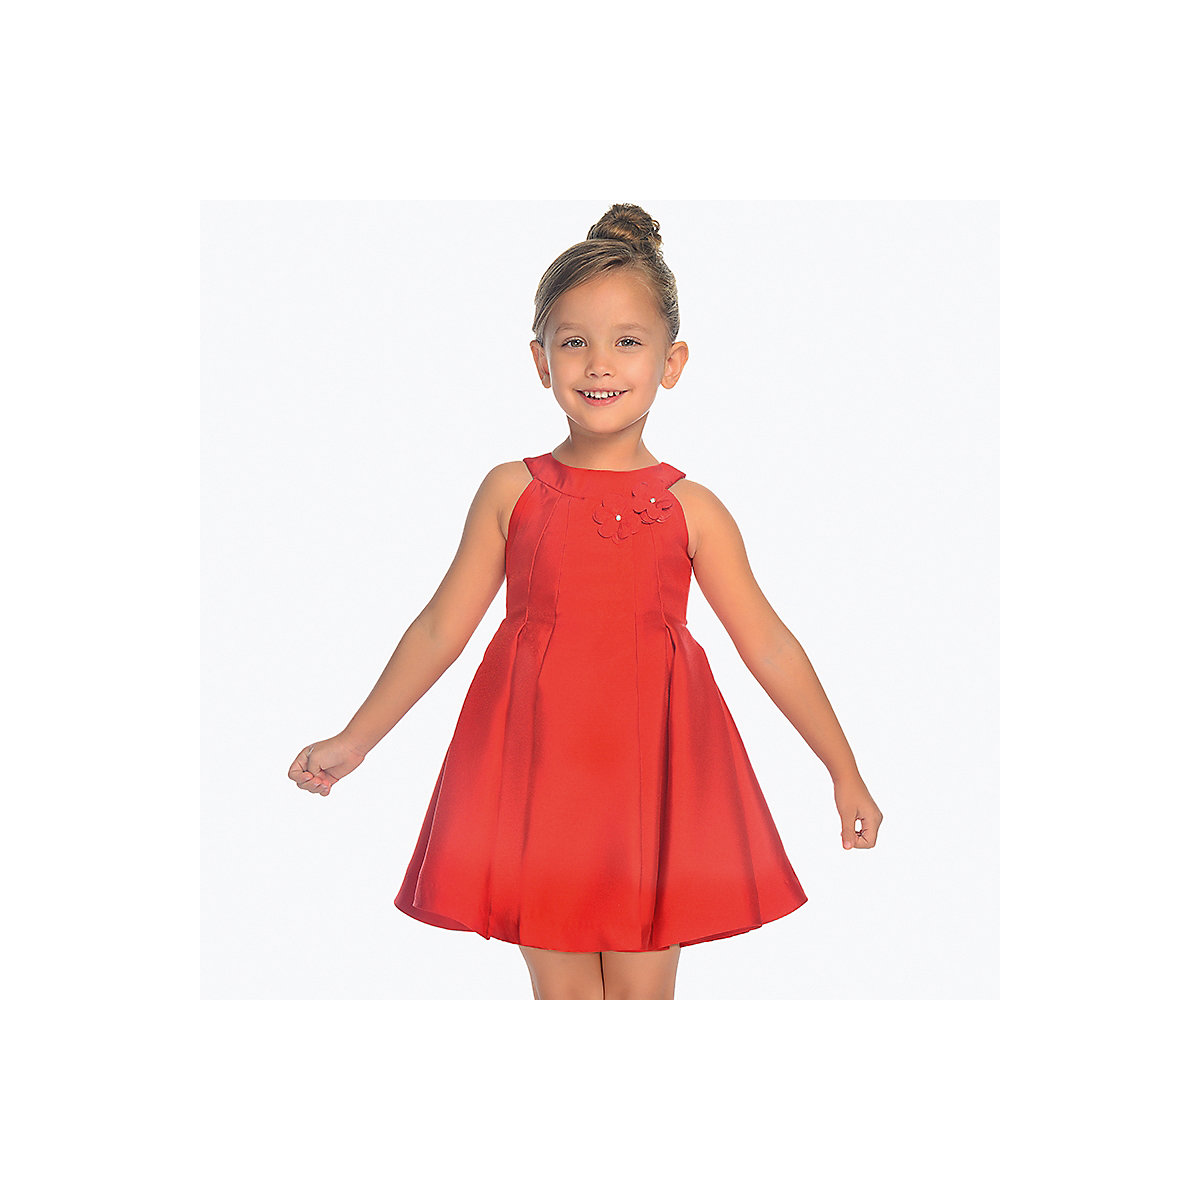 MAYORAL Dresses 10687142 Girl Children Party fitted pleated skirt Red Polyester Preppy Style Solid Knee-Length Sleeveless Sleeve